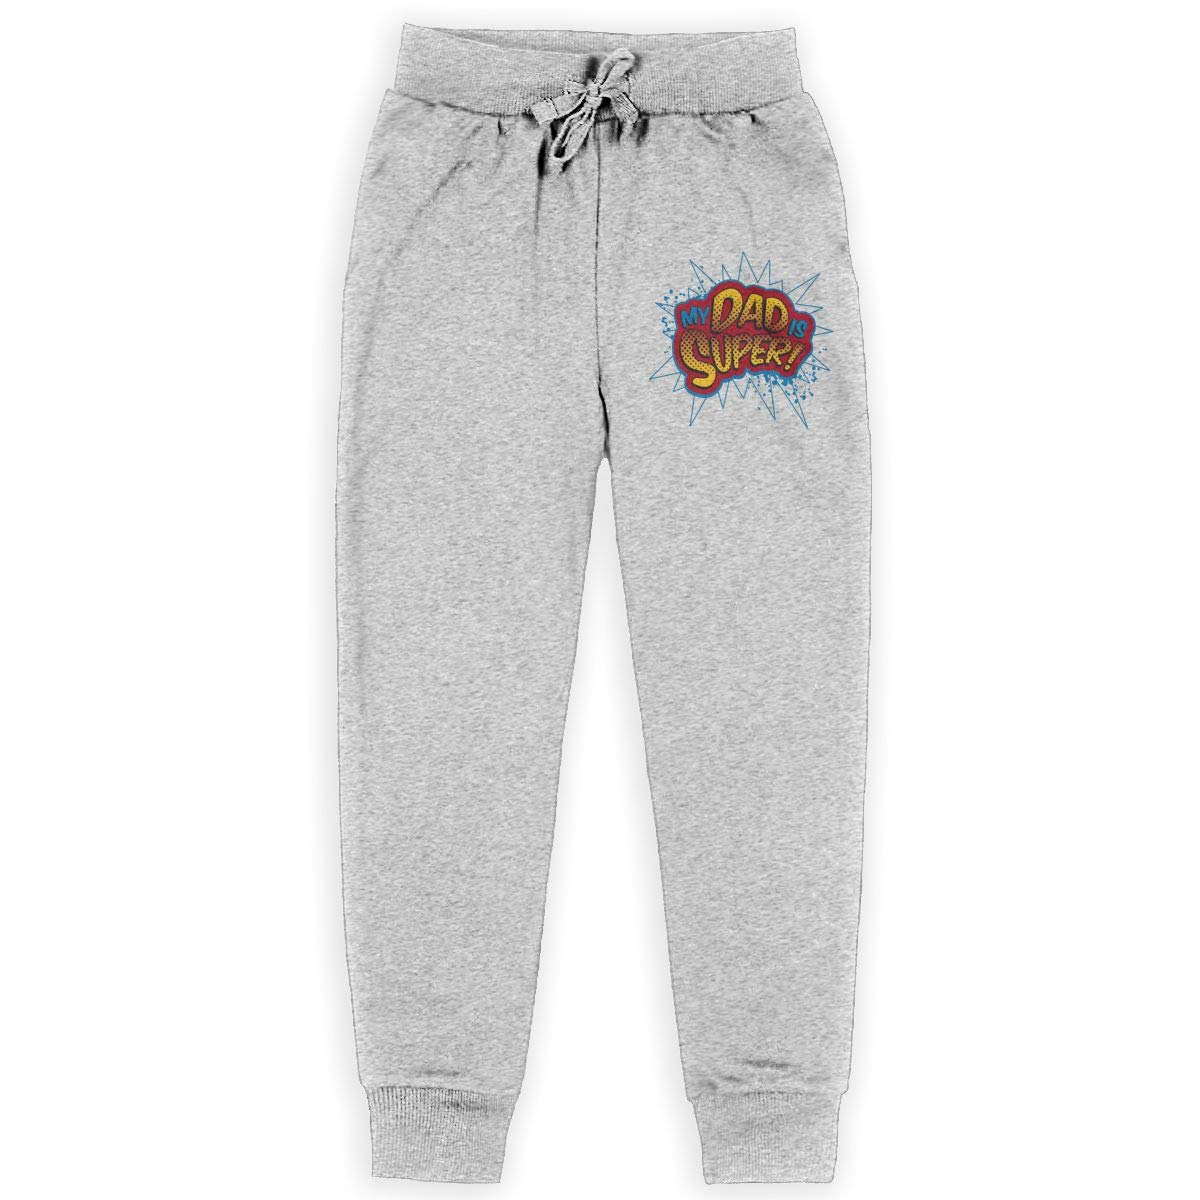 Xinding Boys Fashion Training Sweatpants Super Dad Adjustable Waist Trousers with Pocket